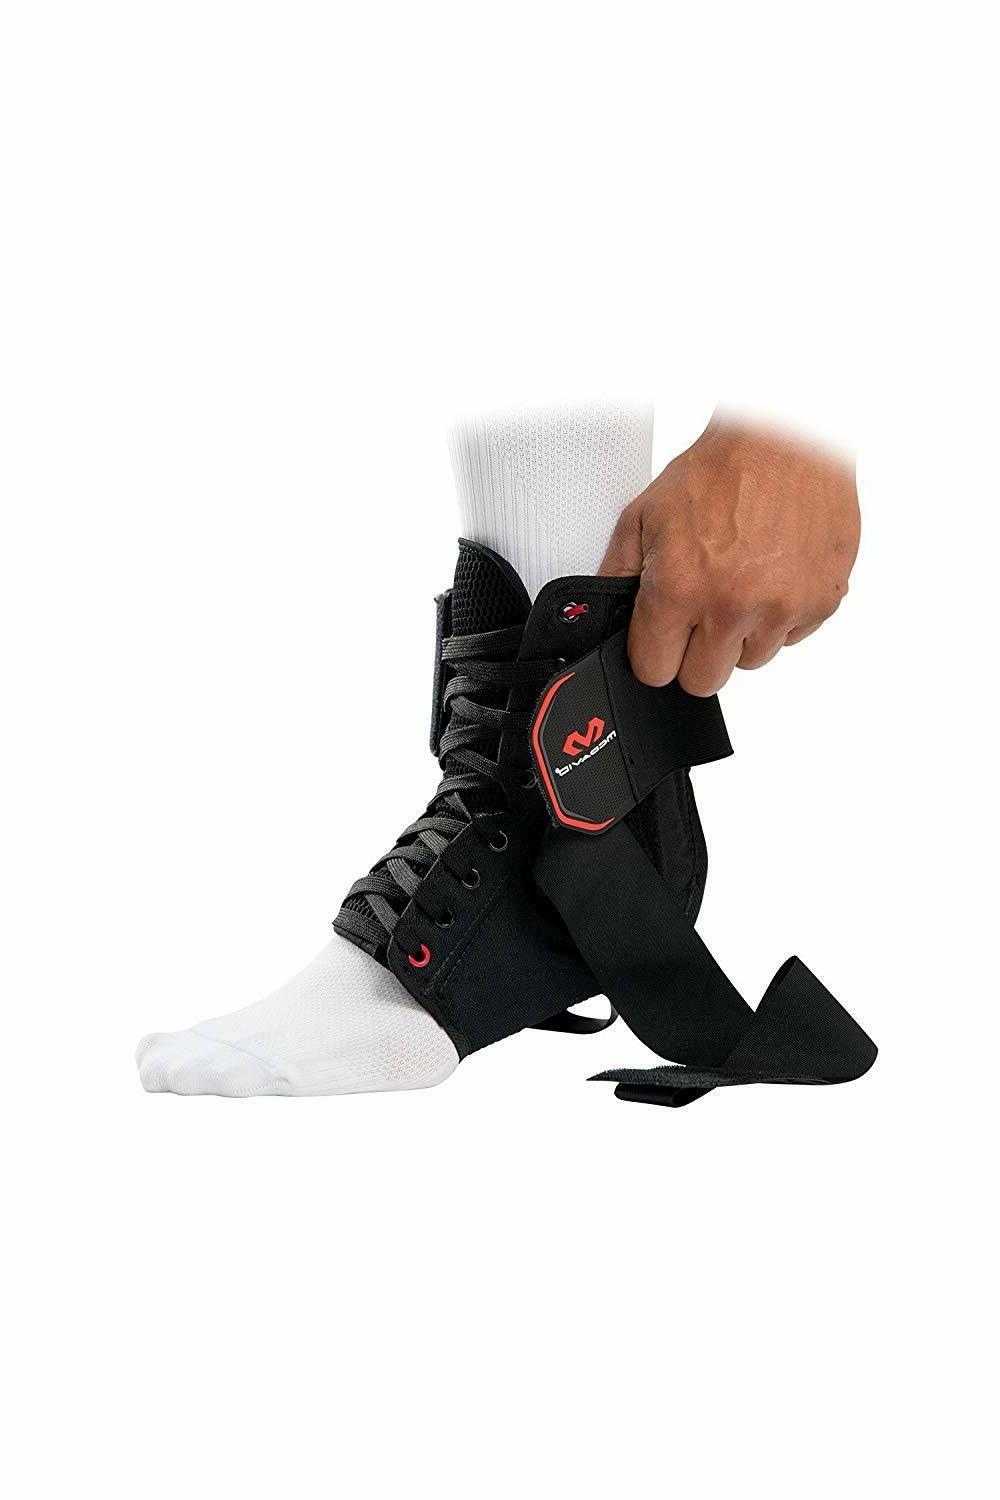 Mcdavid Ankle Brace, Ankle Support, Support for Volle